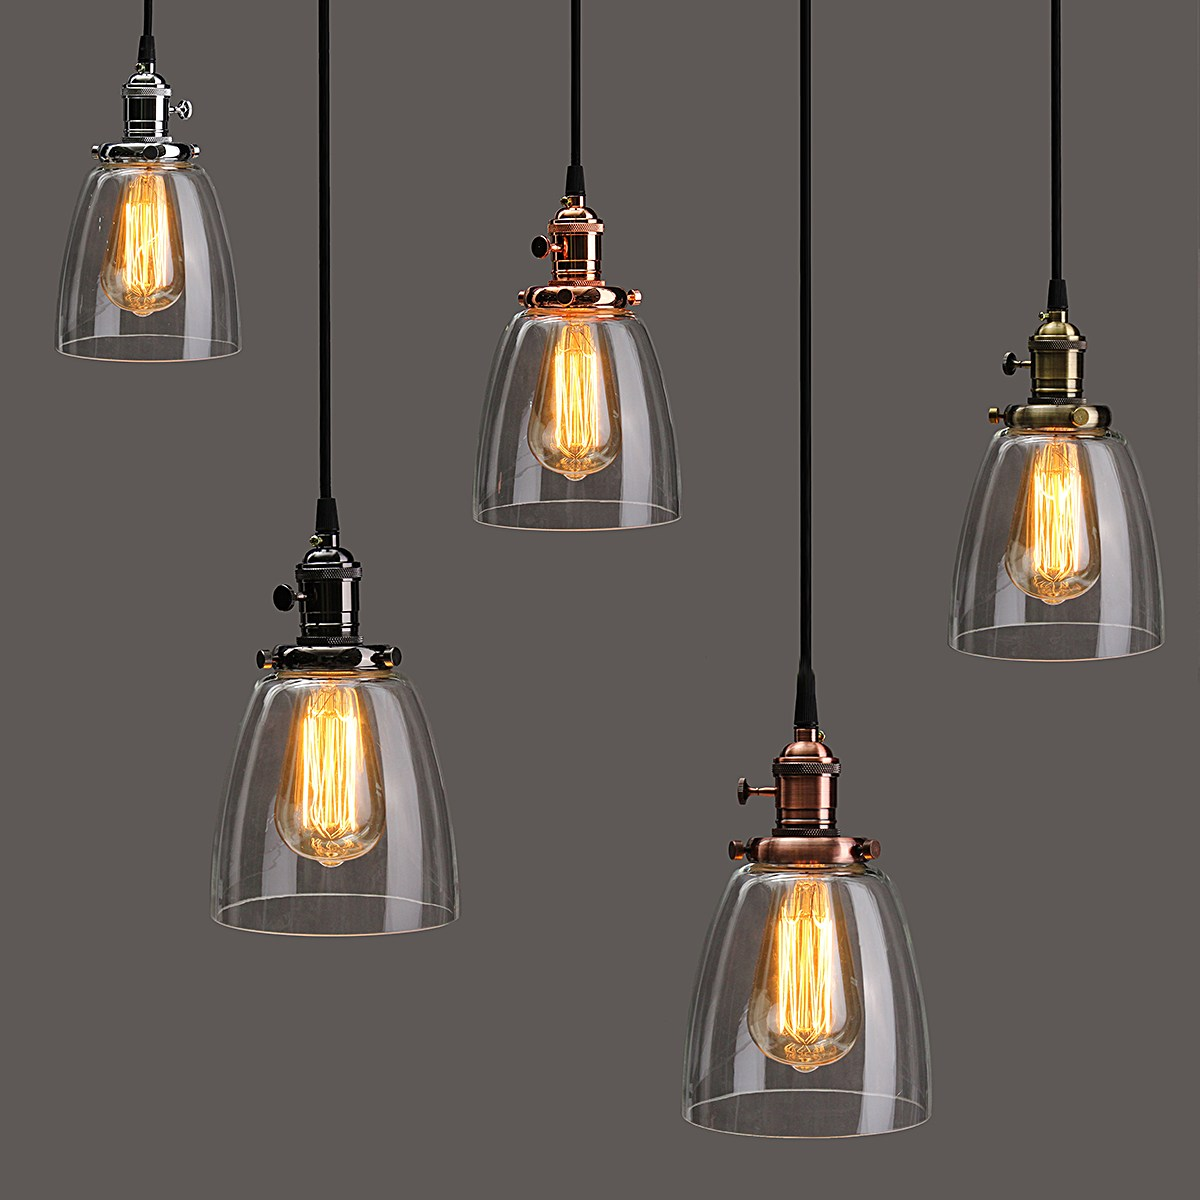 E27 Retro Vintage Industrial Pendant Lamp Glass Cover 2M Cord Coffee Bar Hanging Lighting Lamp Bowl Shade Fixture